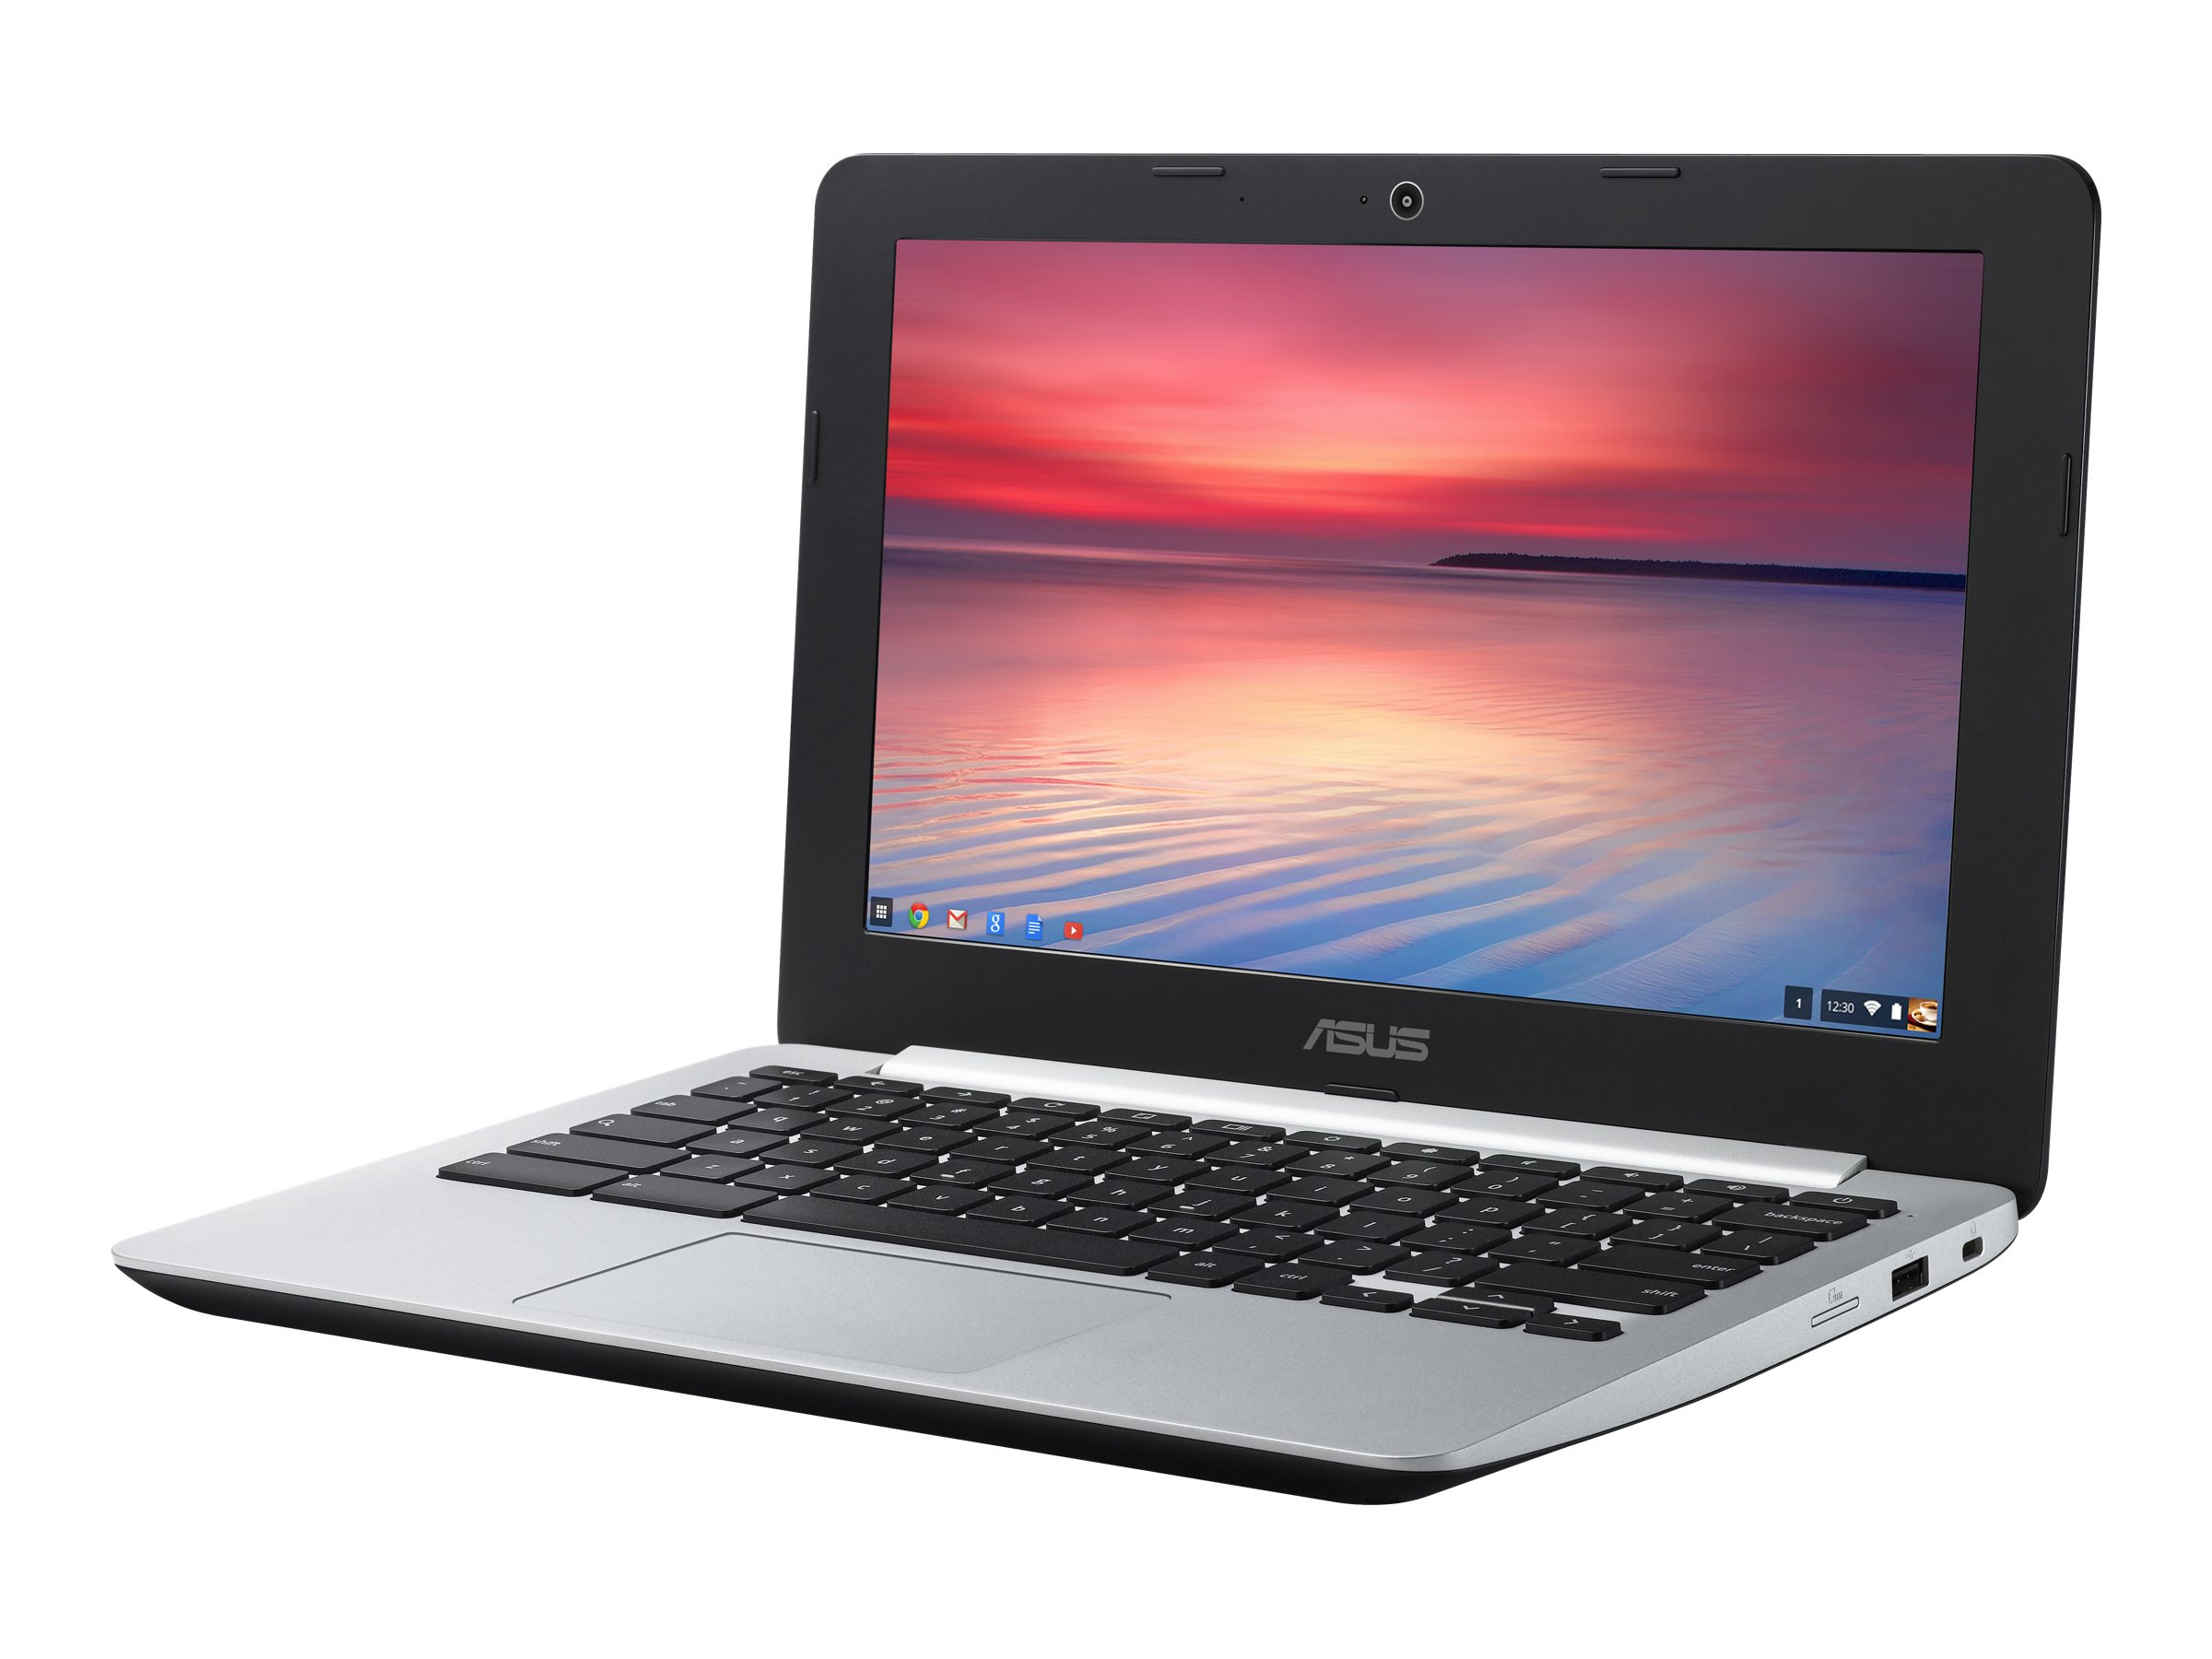 Asus C200MA-DS02 Celeron 2.1GHz 4GB 16GB 11.6 ChromeOS Black, C200MA-DS02, 30846613, Notebooks